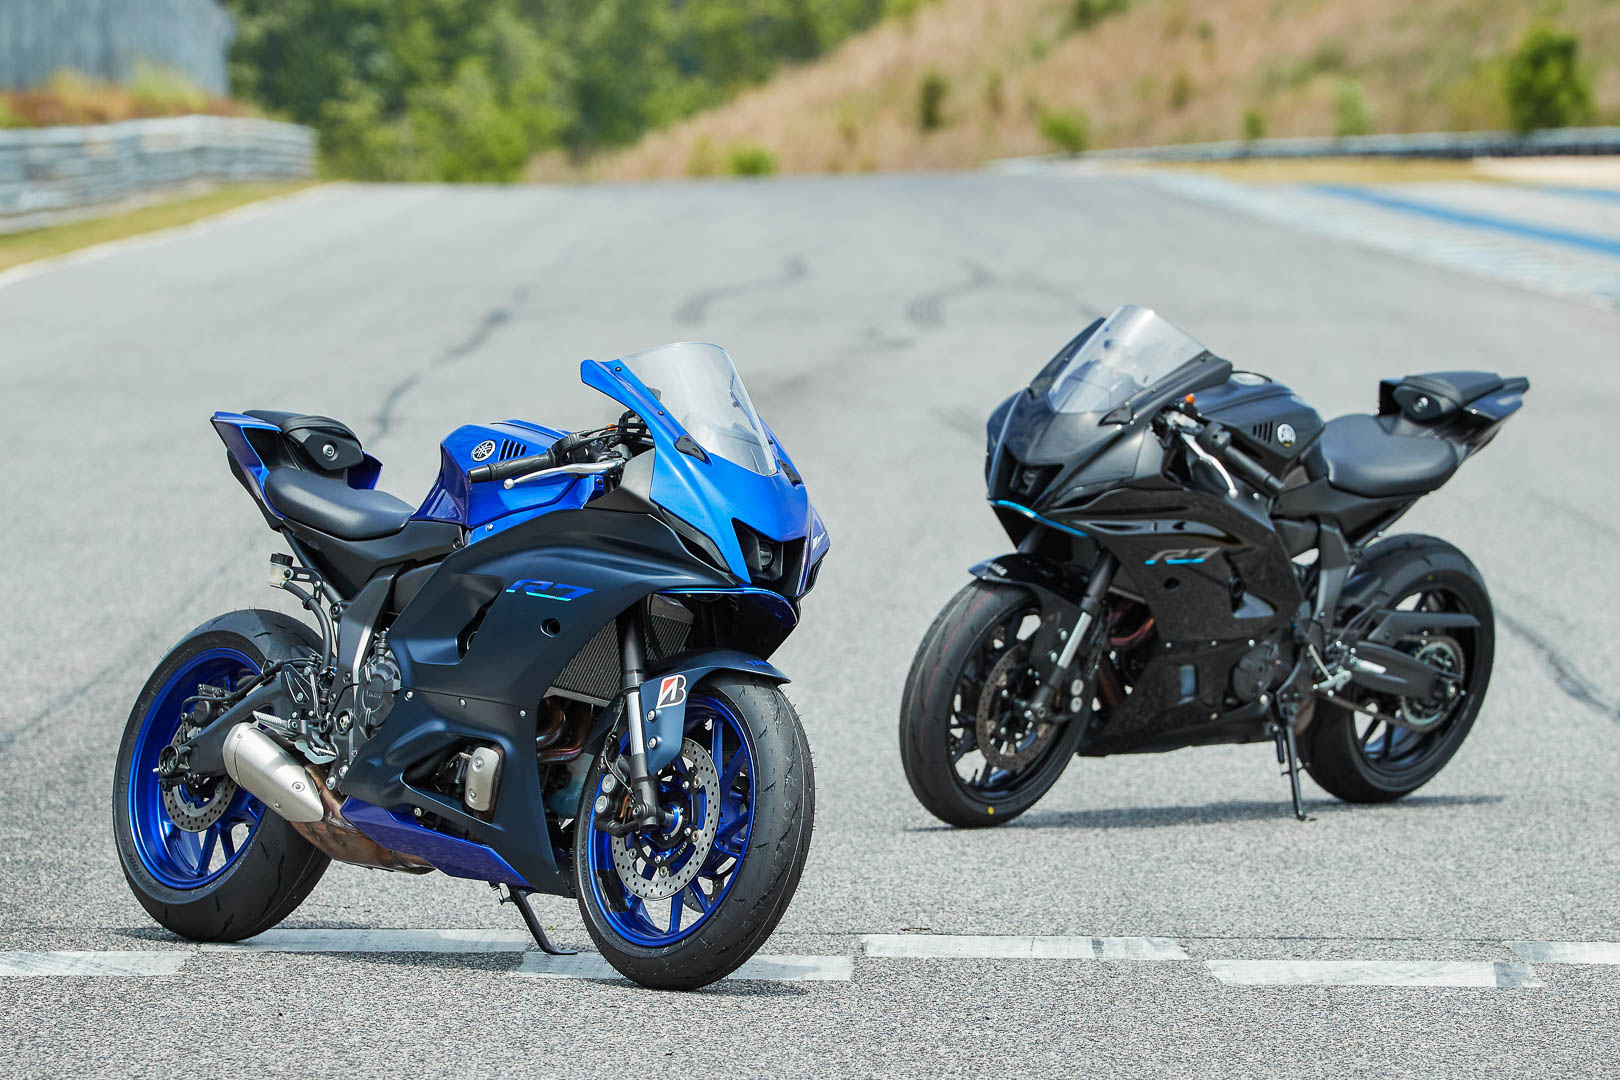 2022 Yamaha YZF-R7 Review: For Sale